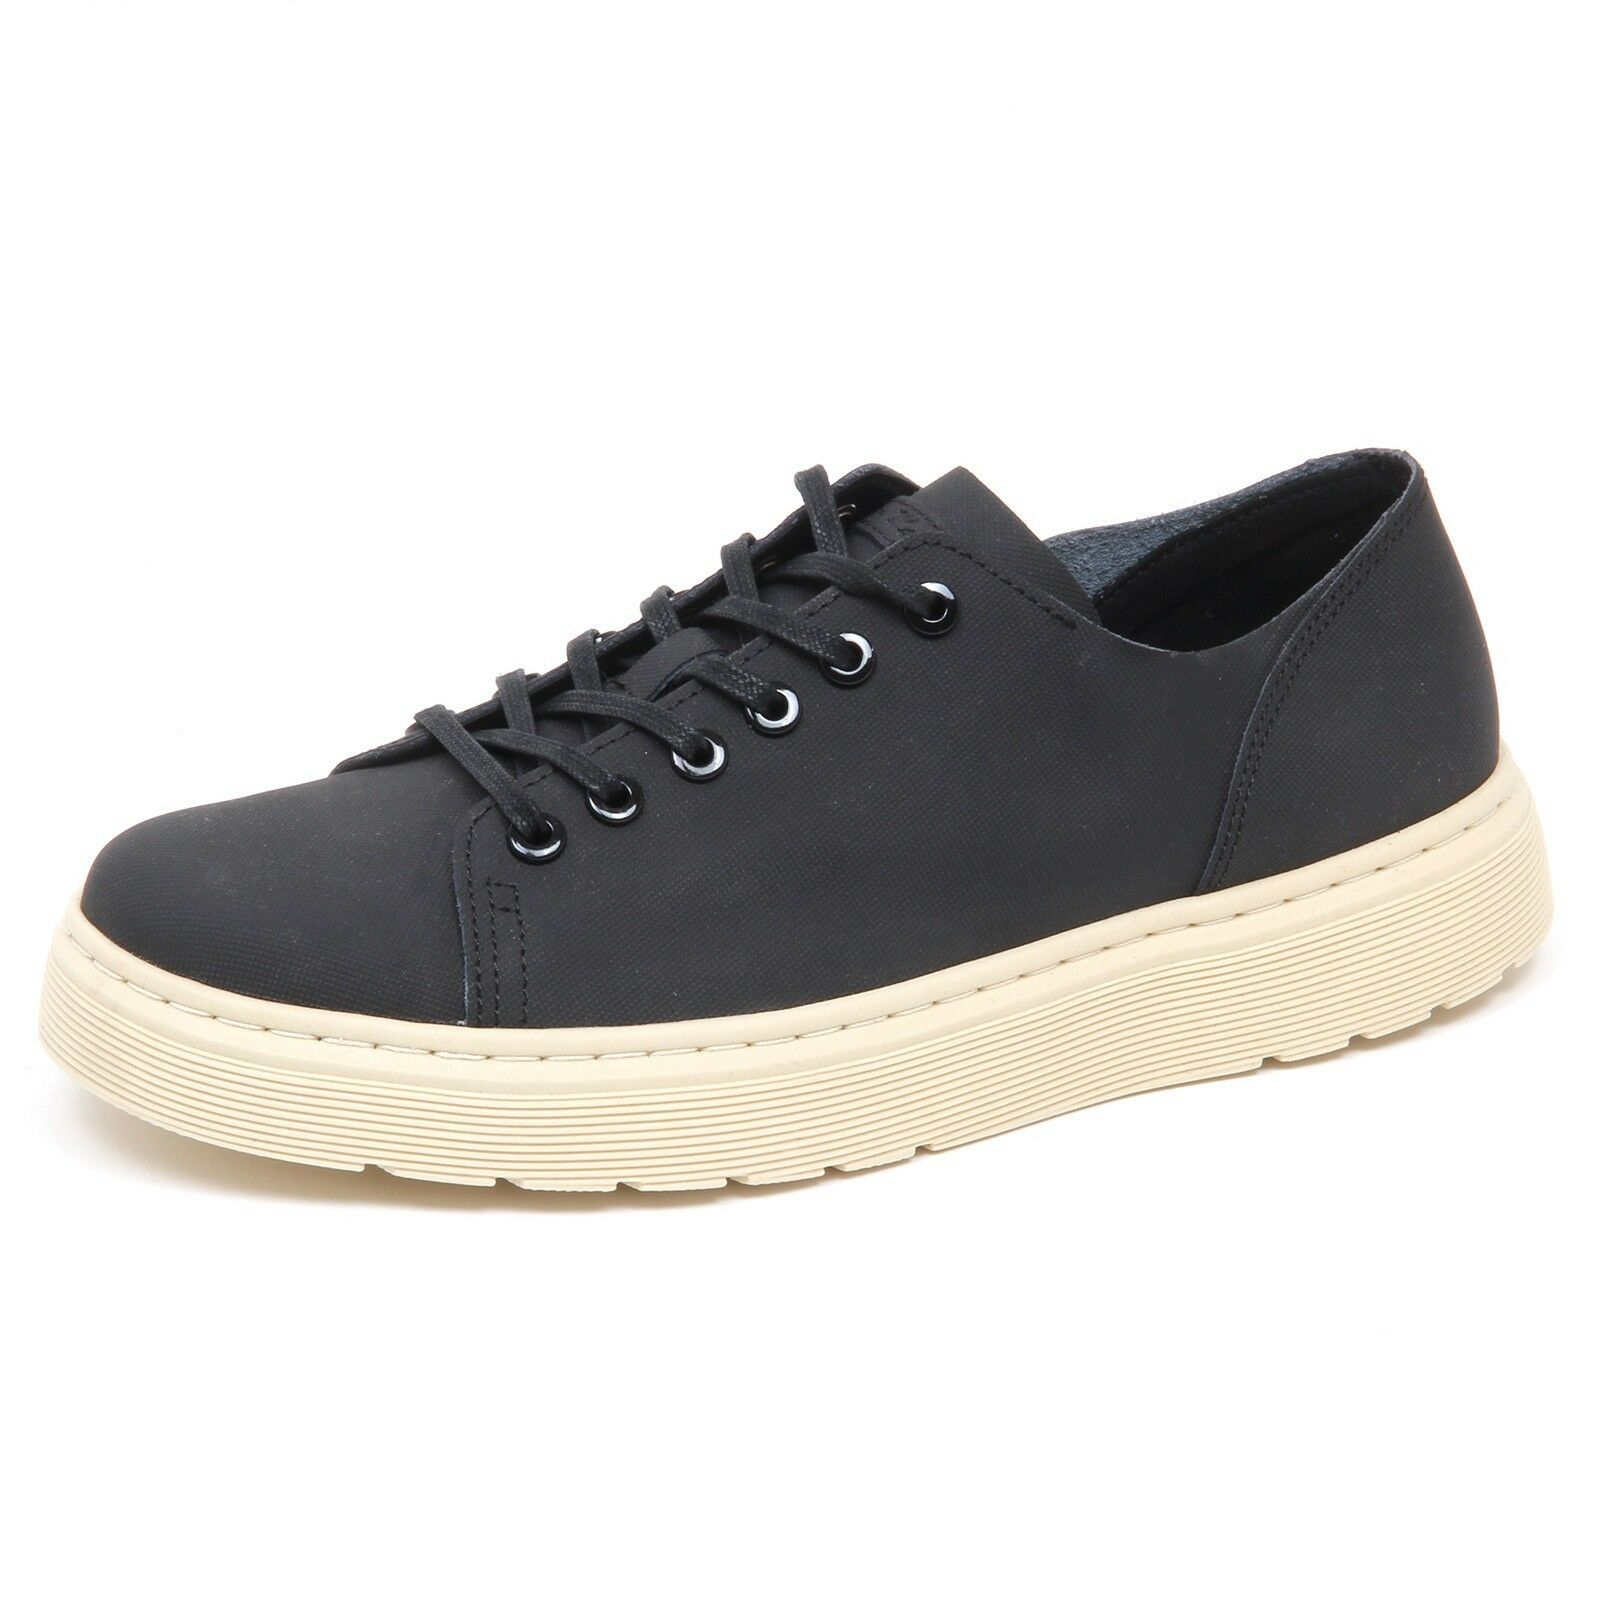 D8036 (SAMPLE DR. NOT FOR SALE WITHOUT BOX) sneaker hombre DR. (SAMPLE MARTENS Zapatos man 1c6701